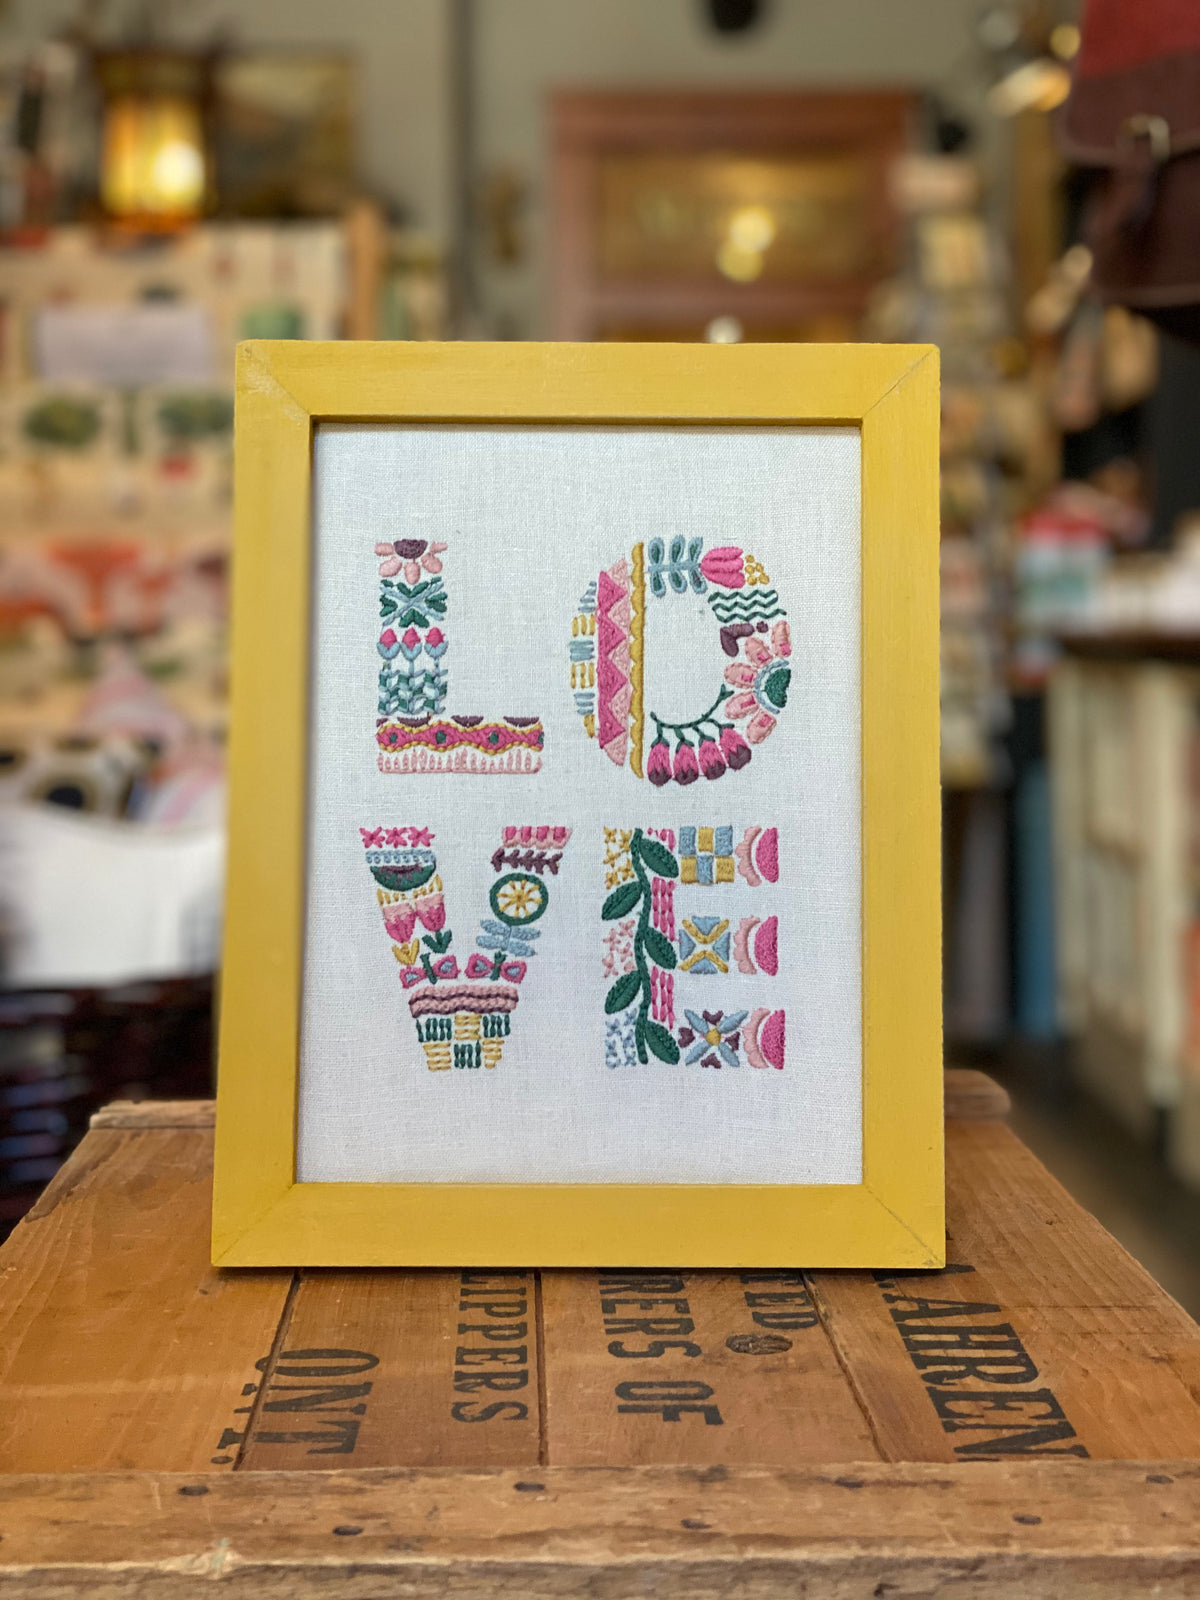 Framed and Embroidered LOVE Art